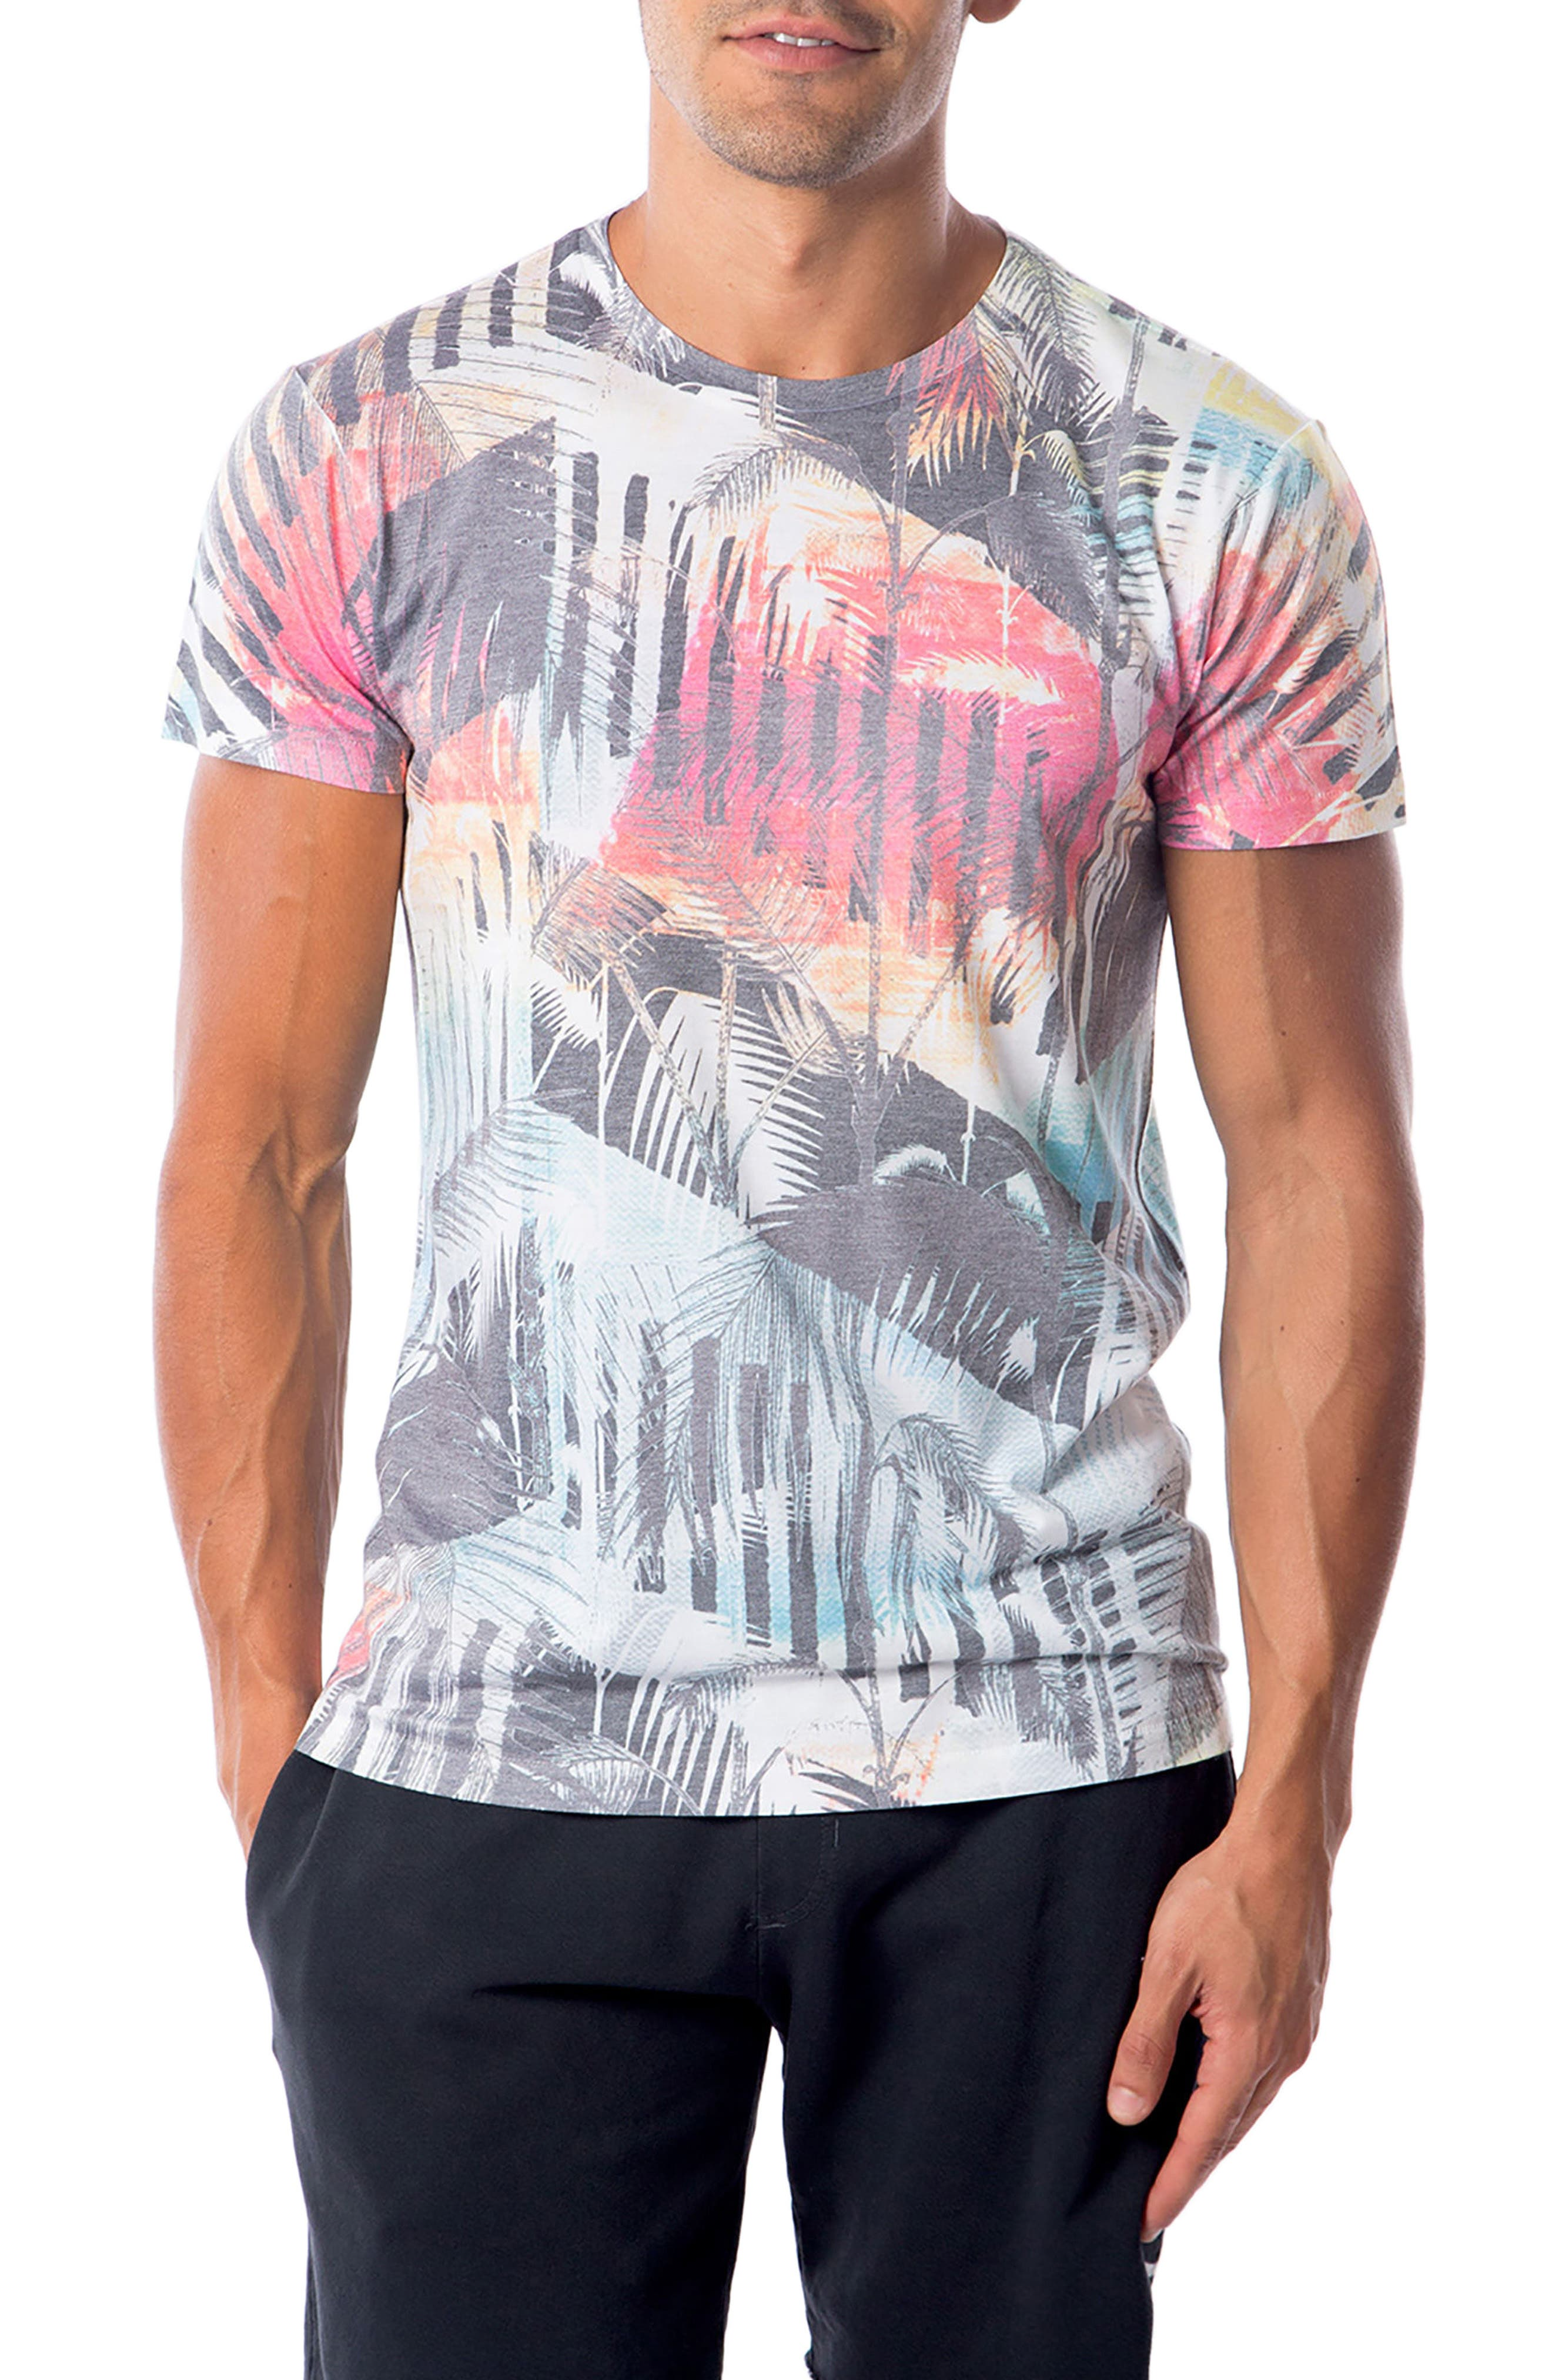 Deco Palms Print T-Shirt,                             Main thumbnail 1, color,                             100